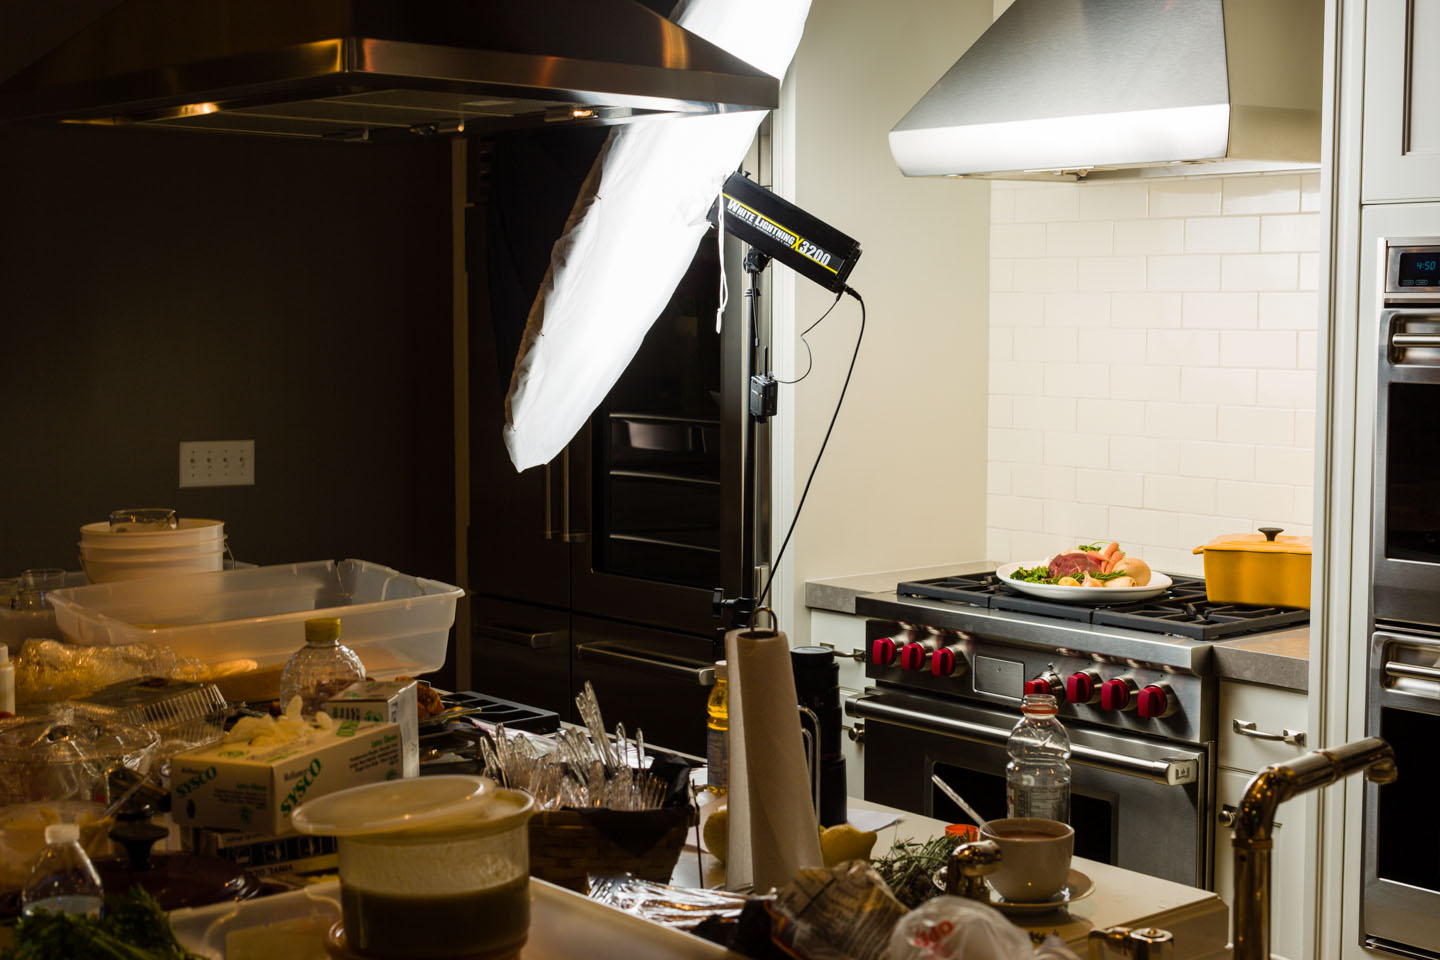 Behind the scenes photograph of my food photo shoot